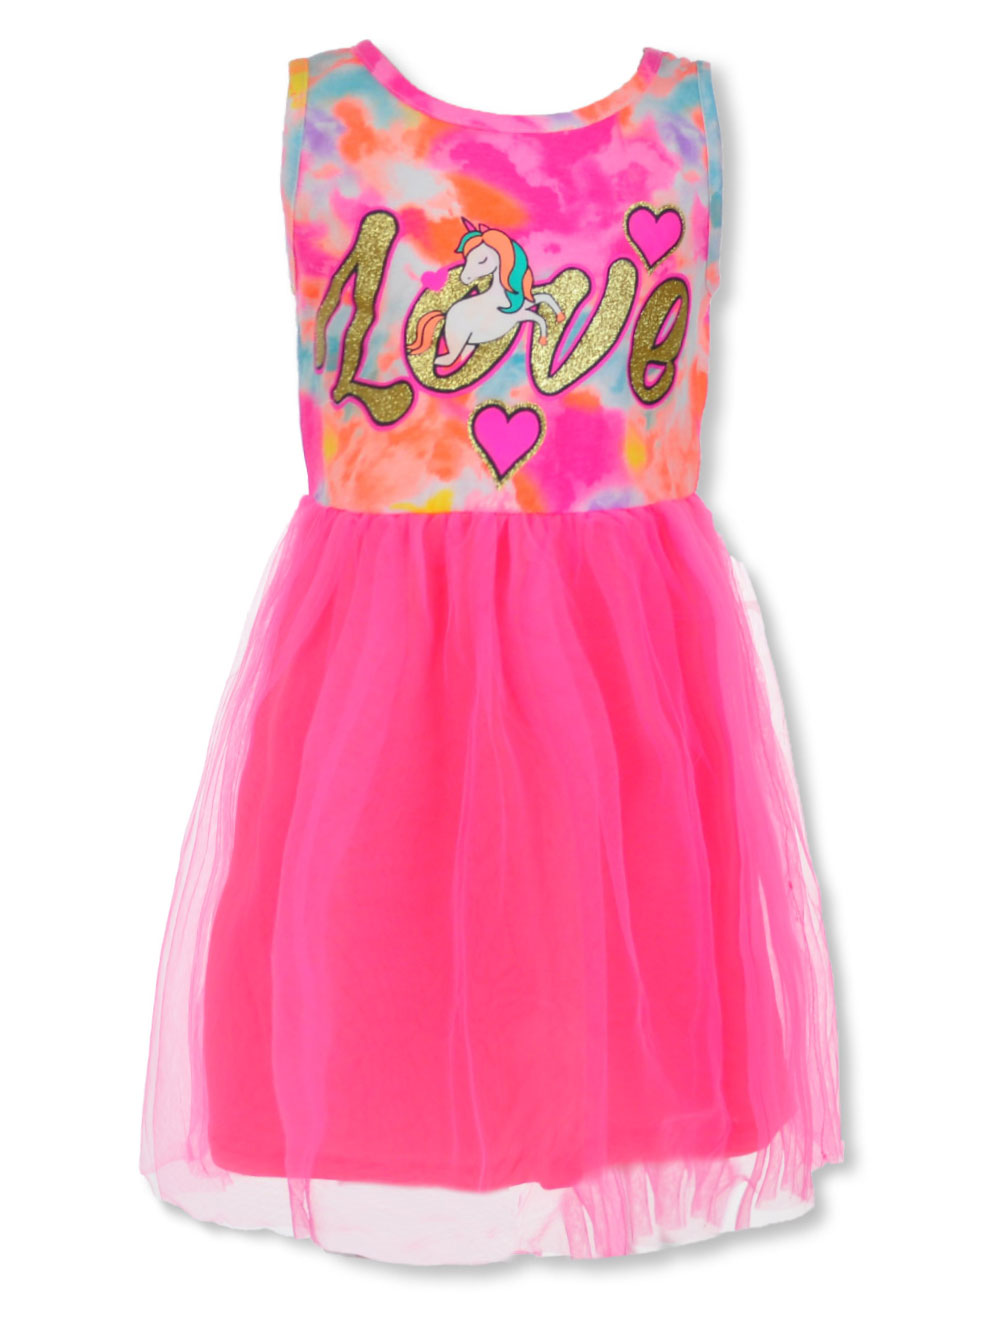 Size 5 Casual Dresses for Girls